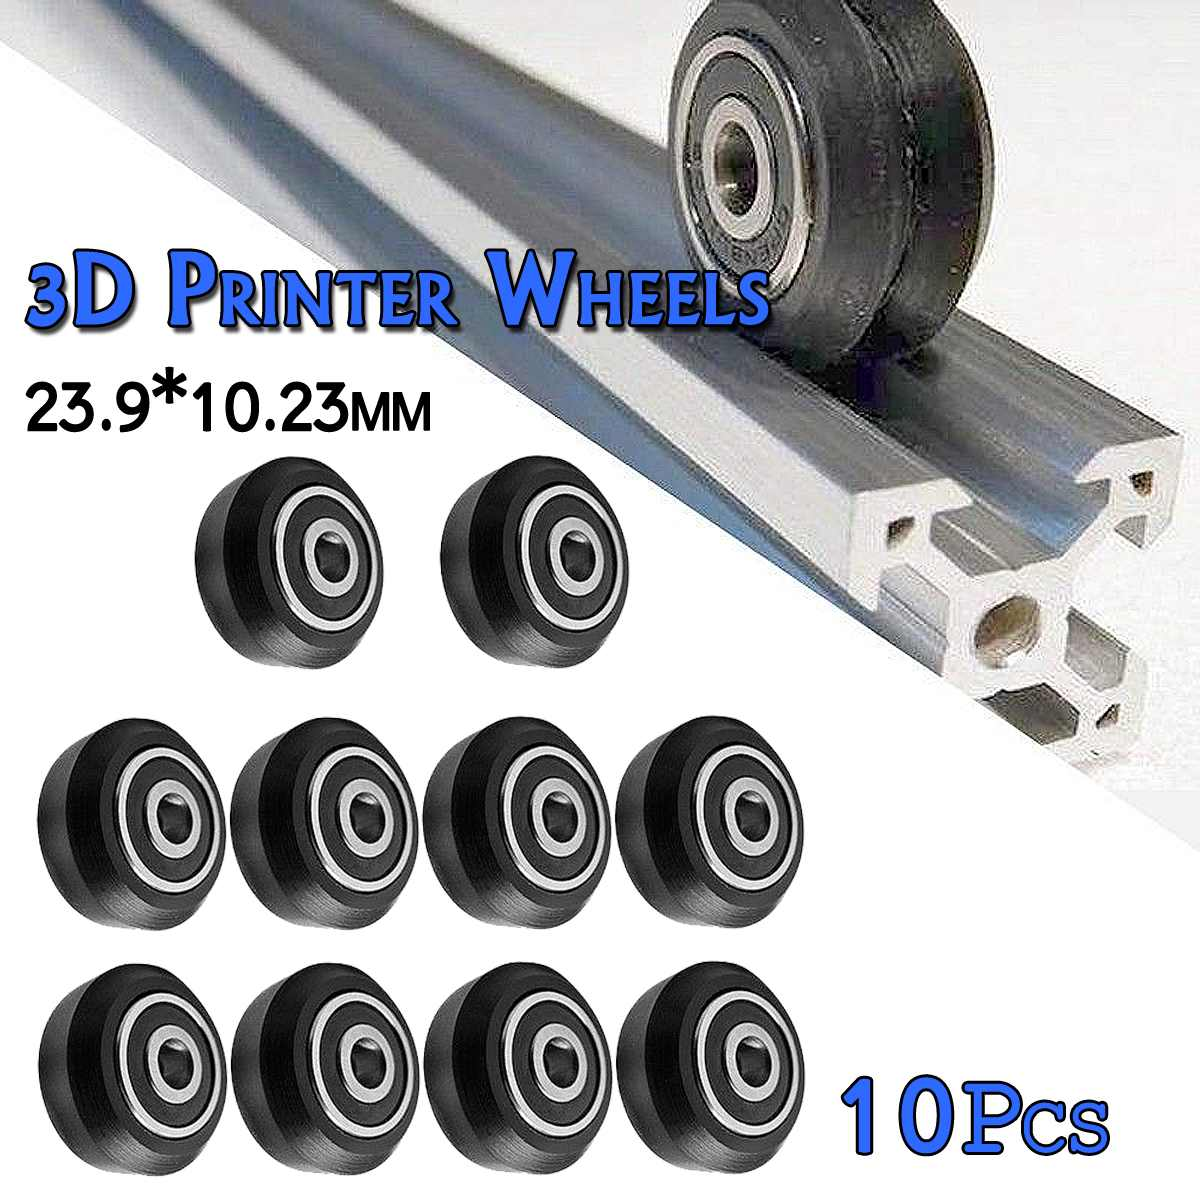 10Pcs/Set 23.9x10.23mm Black Delrin Single V Wheel Kit For V-Slot Aluminium Profile 3D Printer Accessories Single V Wheel Kit